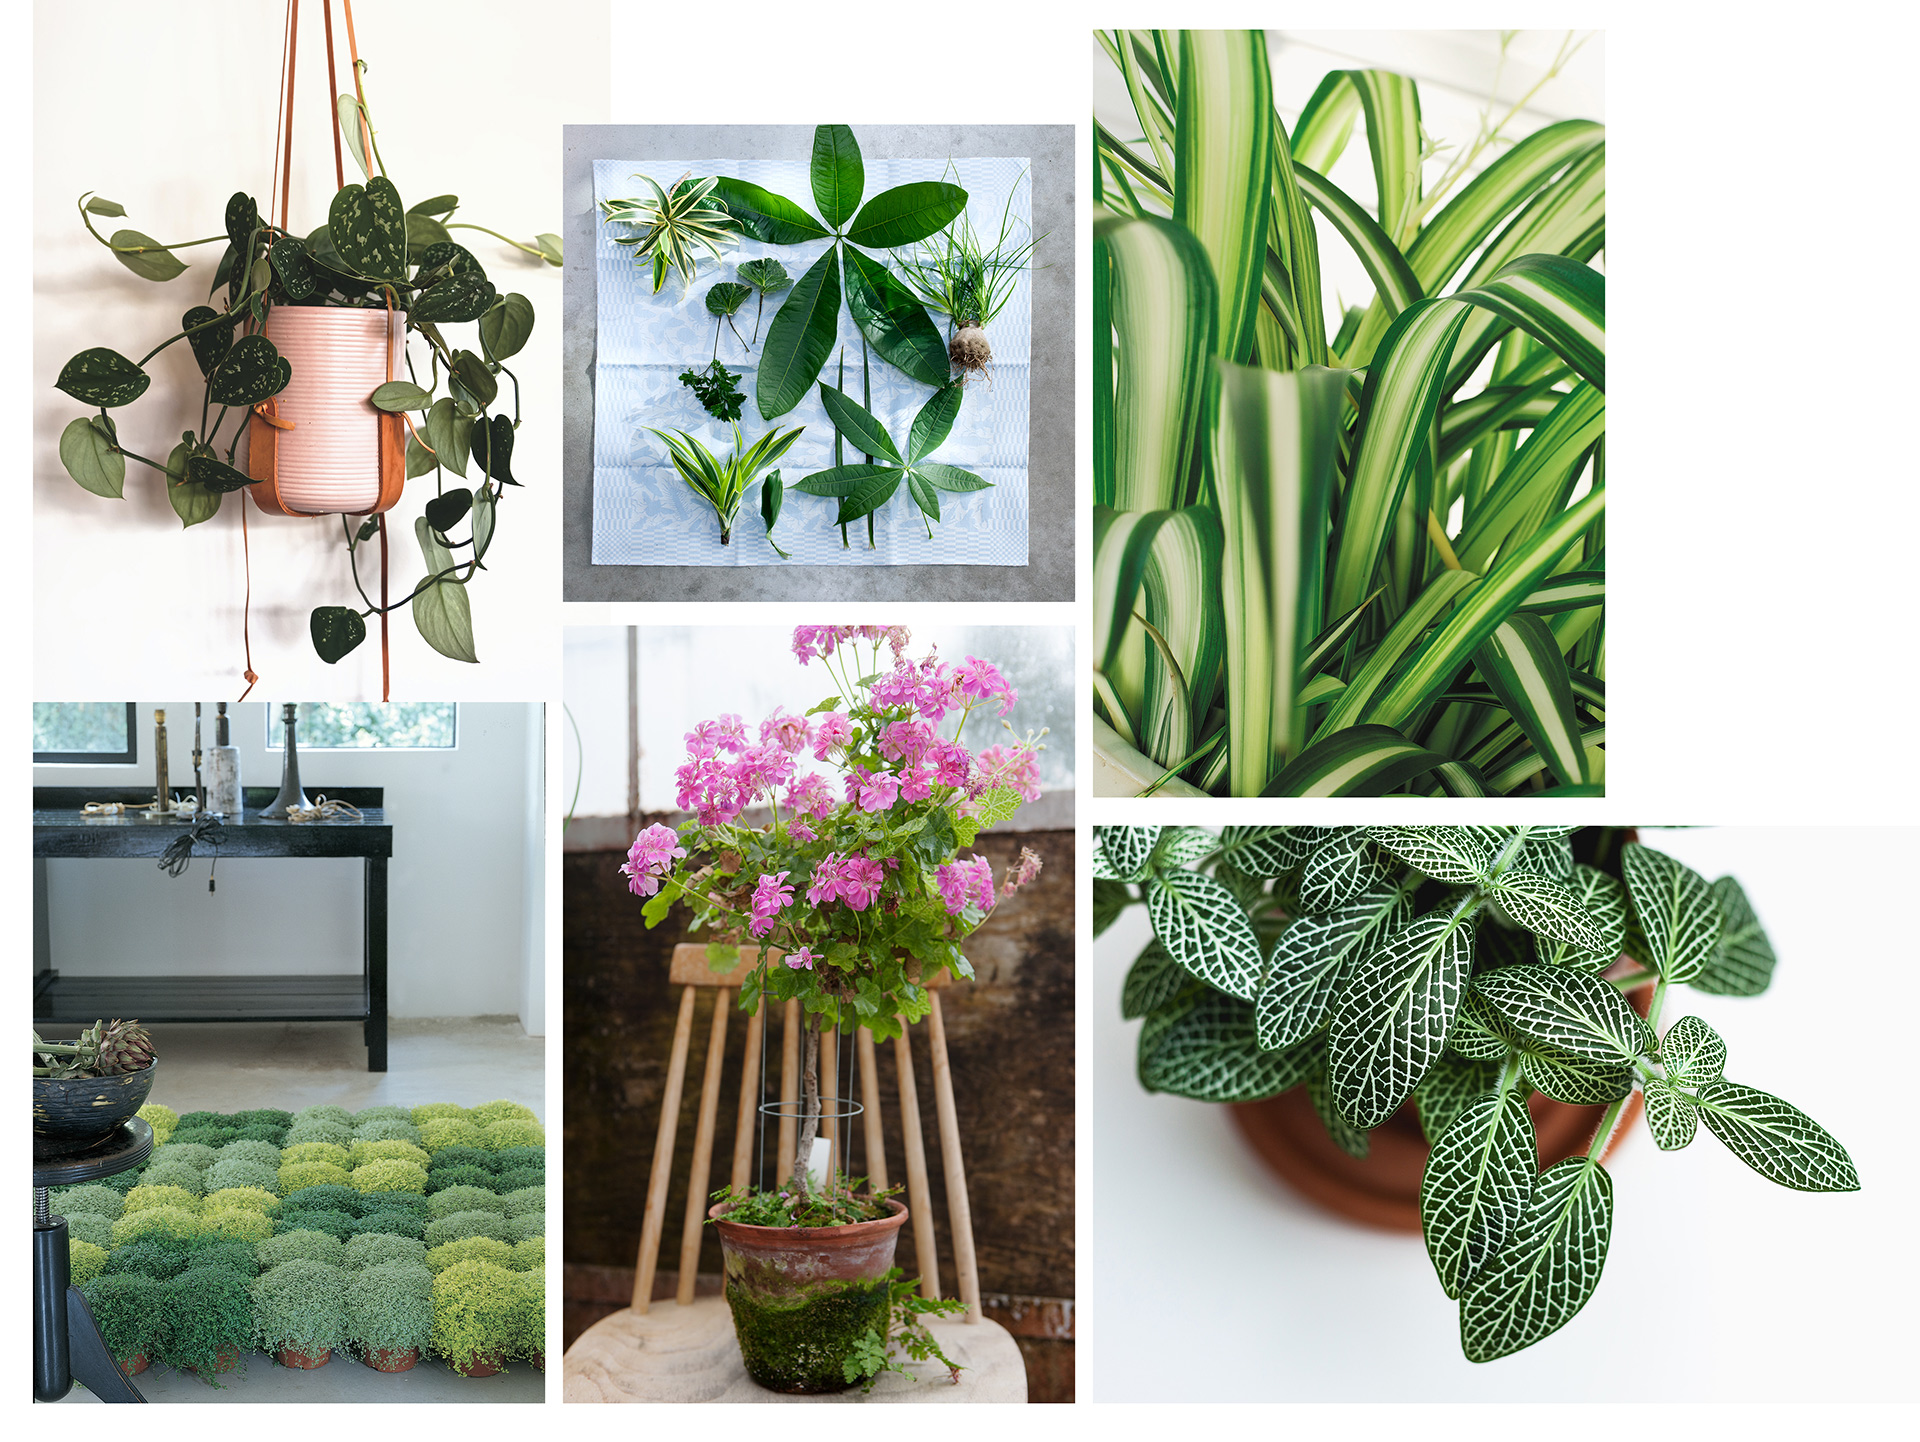 Garden Trends I Craft of Nature I växter inomhus.jpg